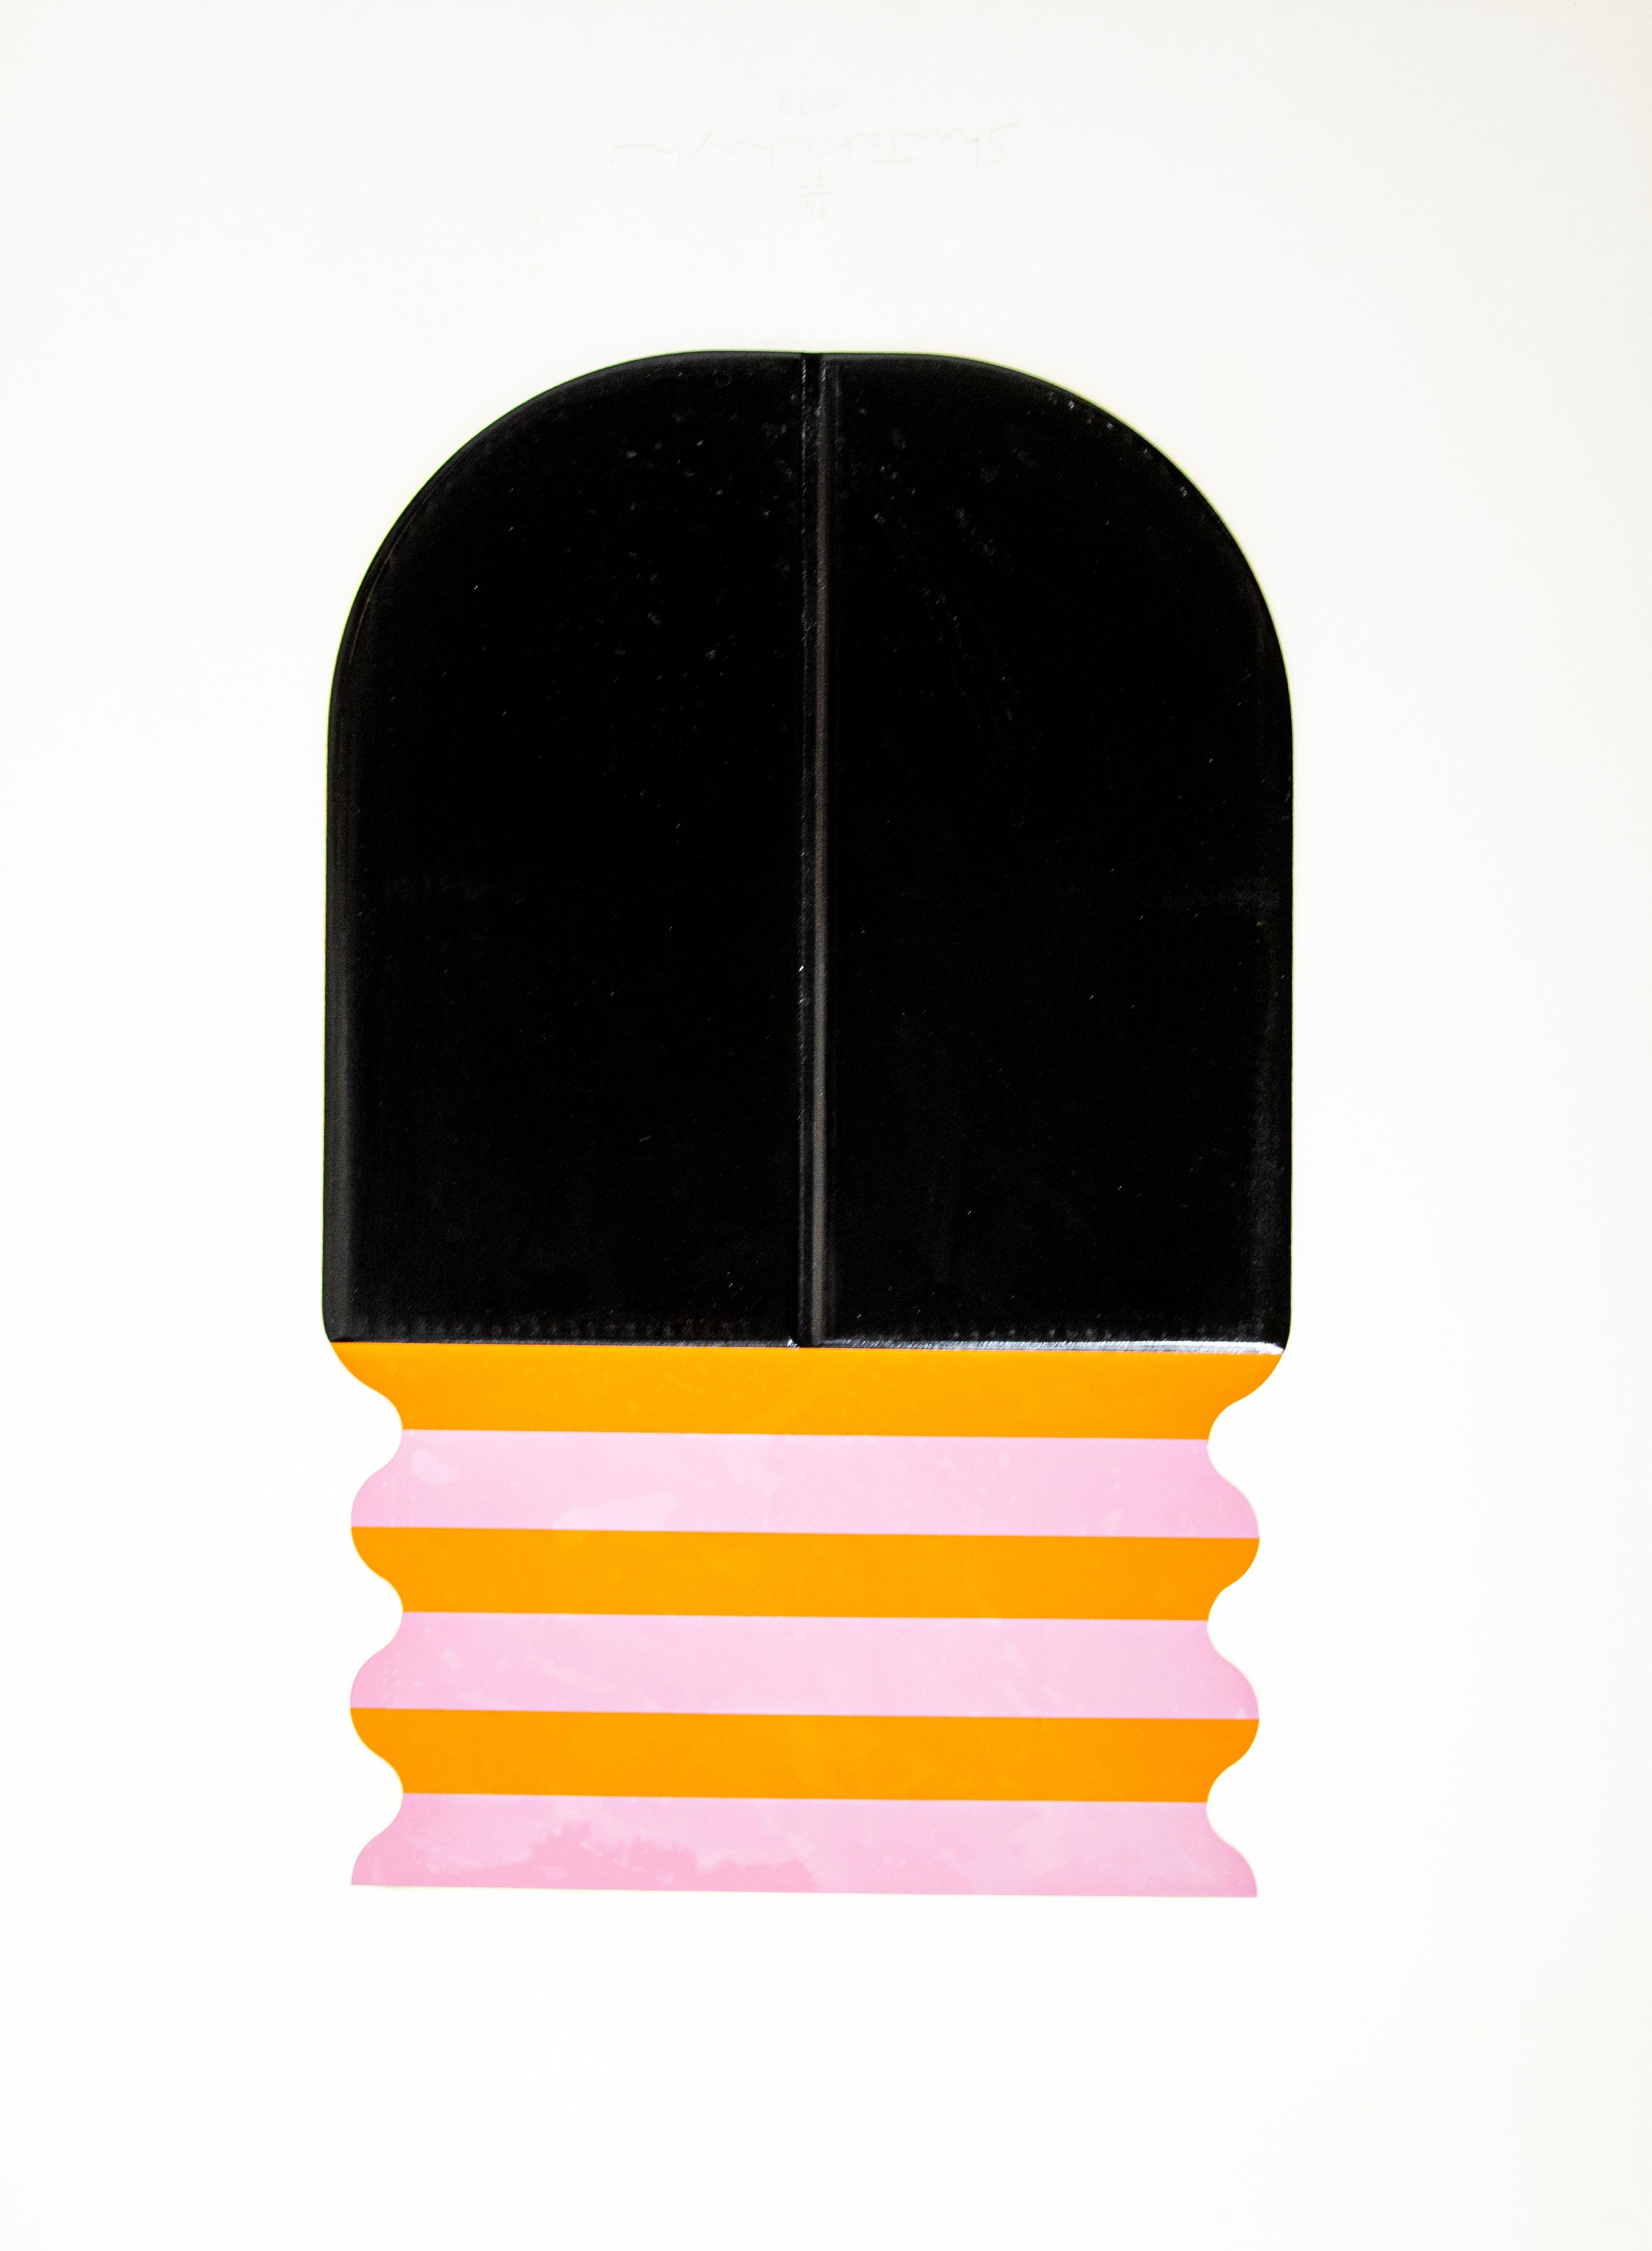 Composition - Embossing and Screen Print by Shu Takahashi - 1973